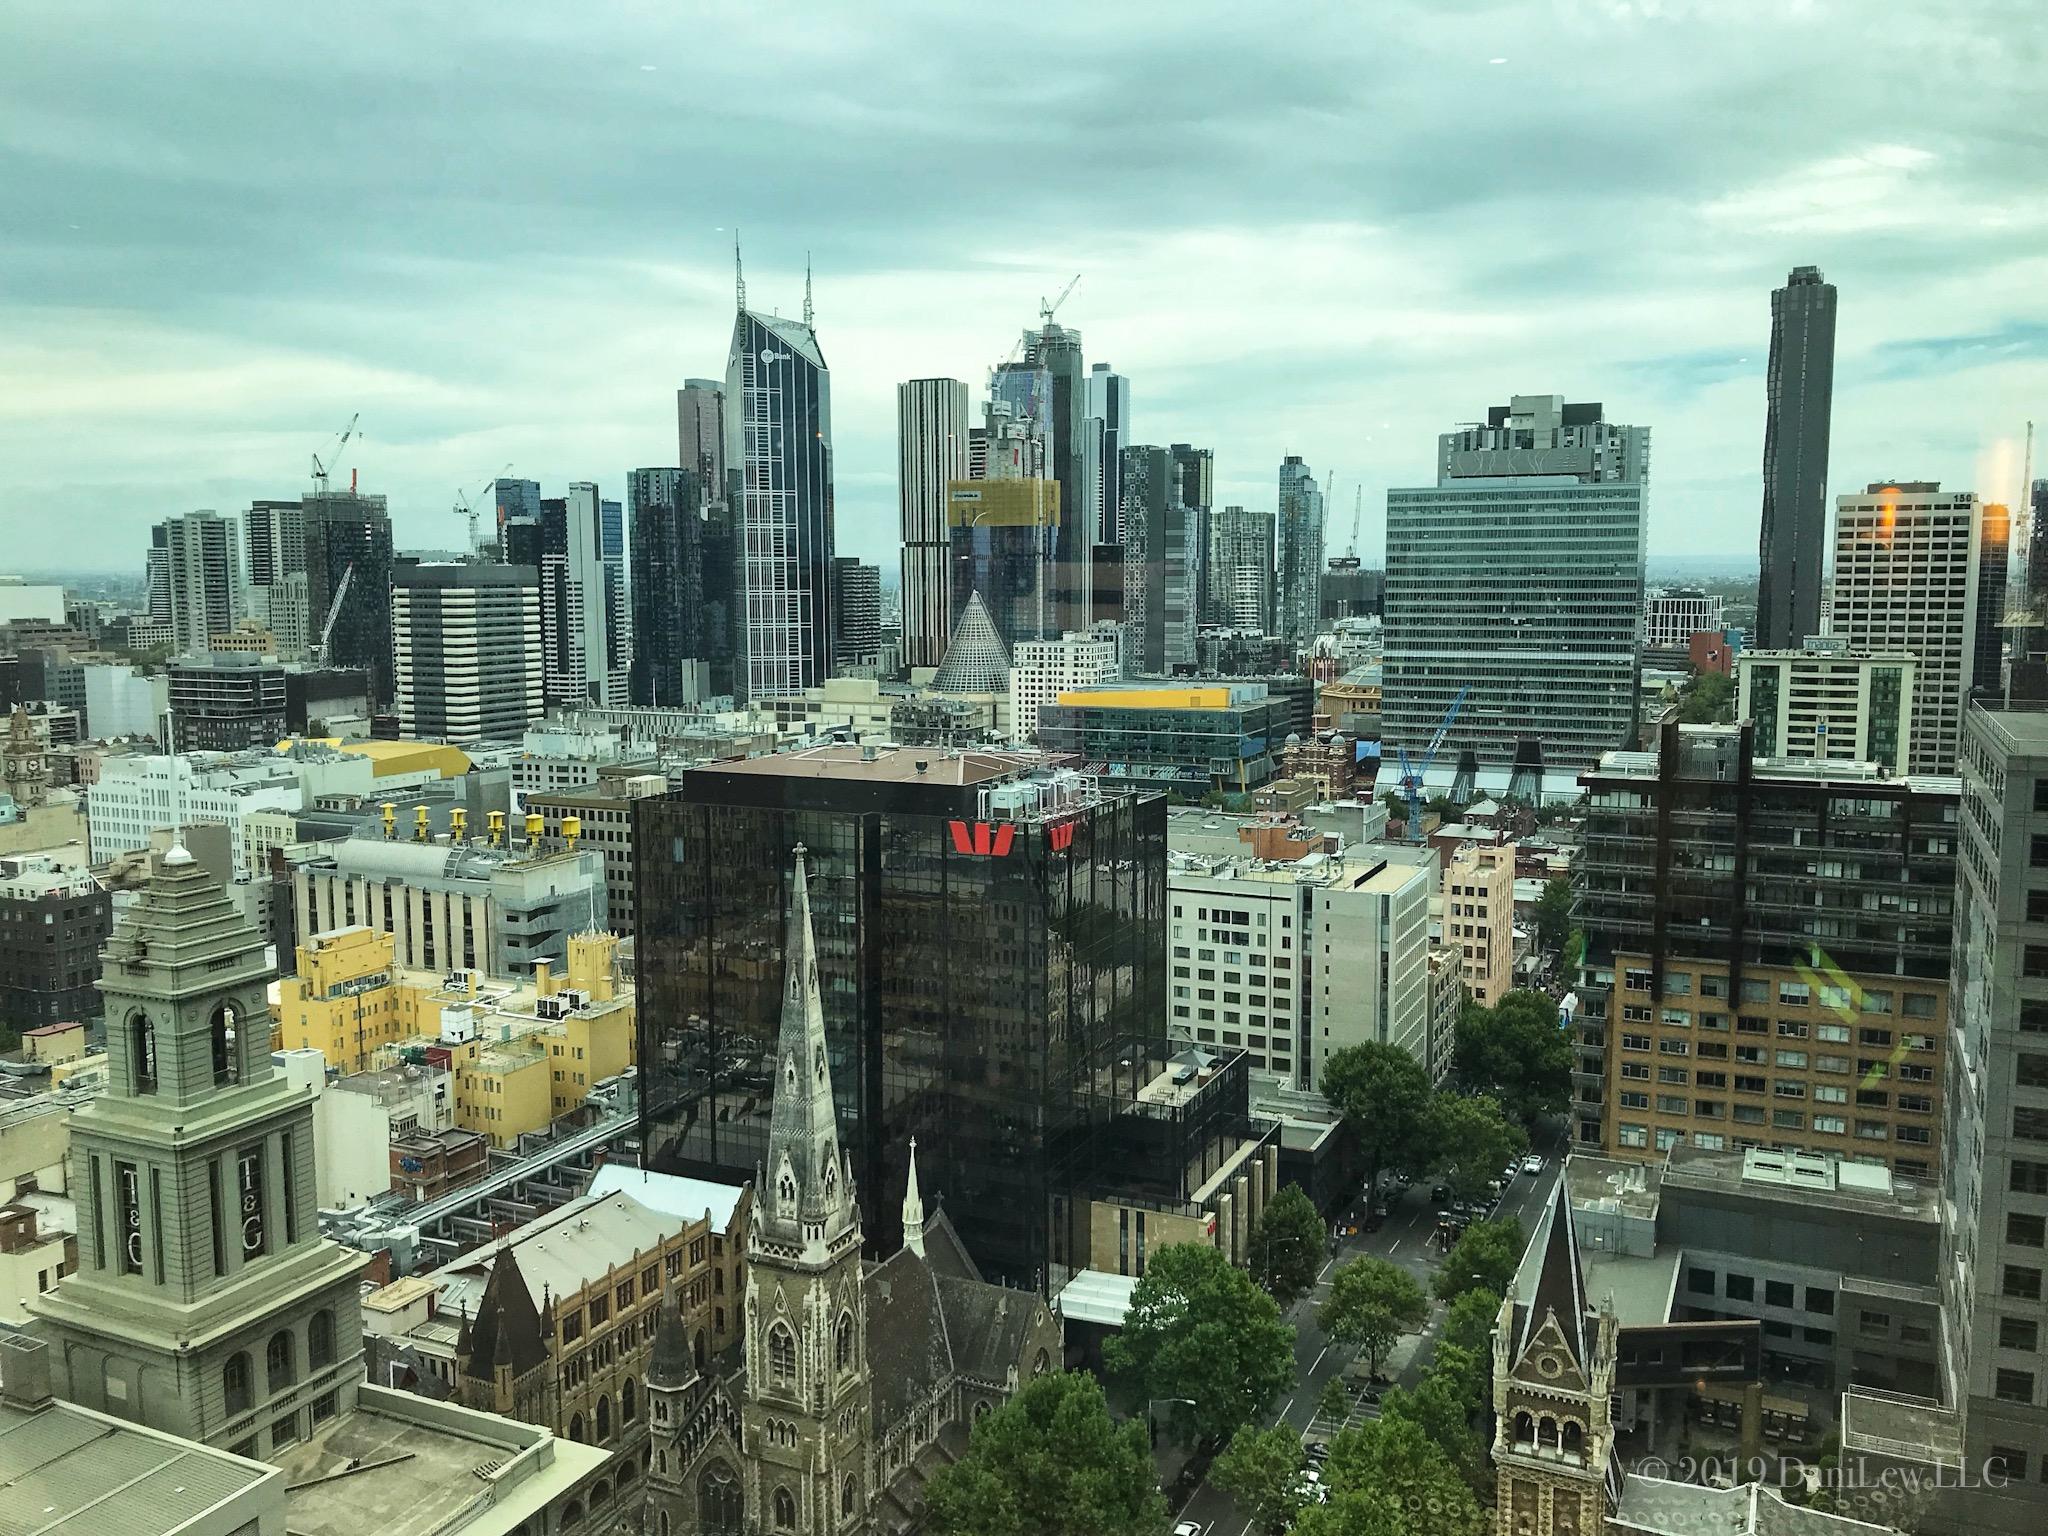 Melbourne Skyline as viewed from the Grand Hyatt - image taken with an iPhone 7